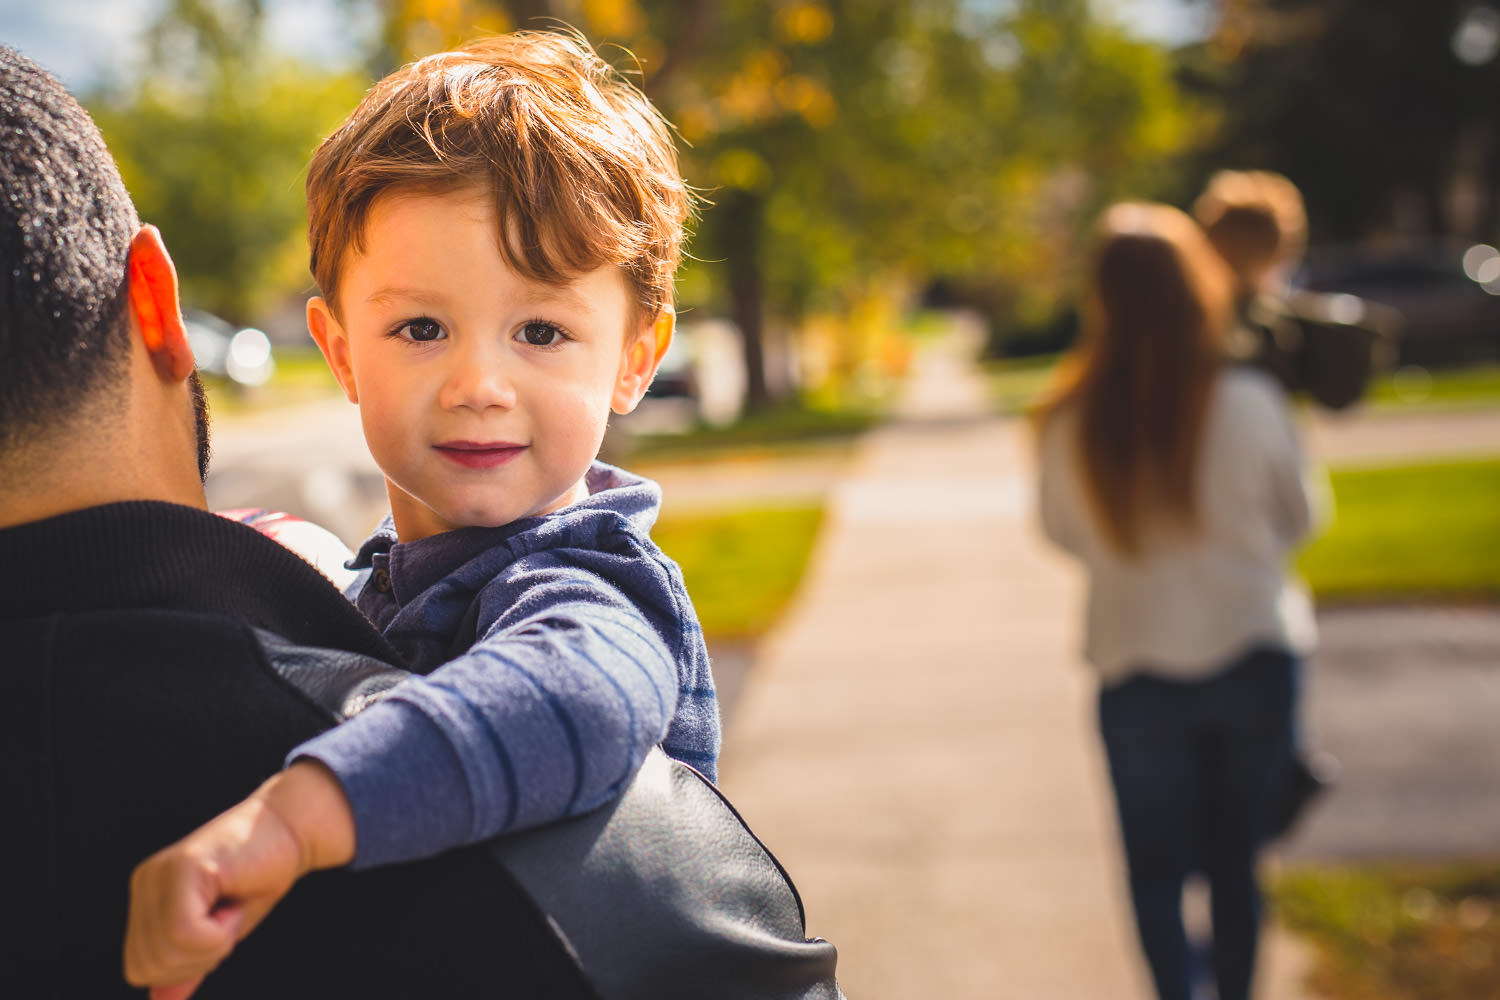 Little boy looks at camera while mom and brother walk ahead